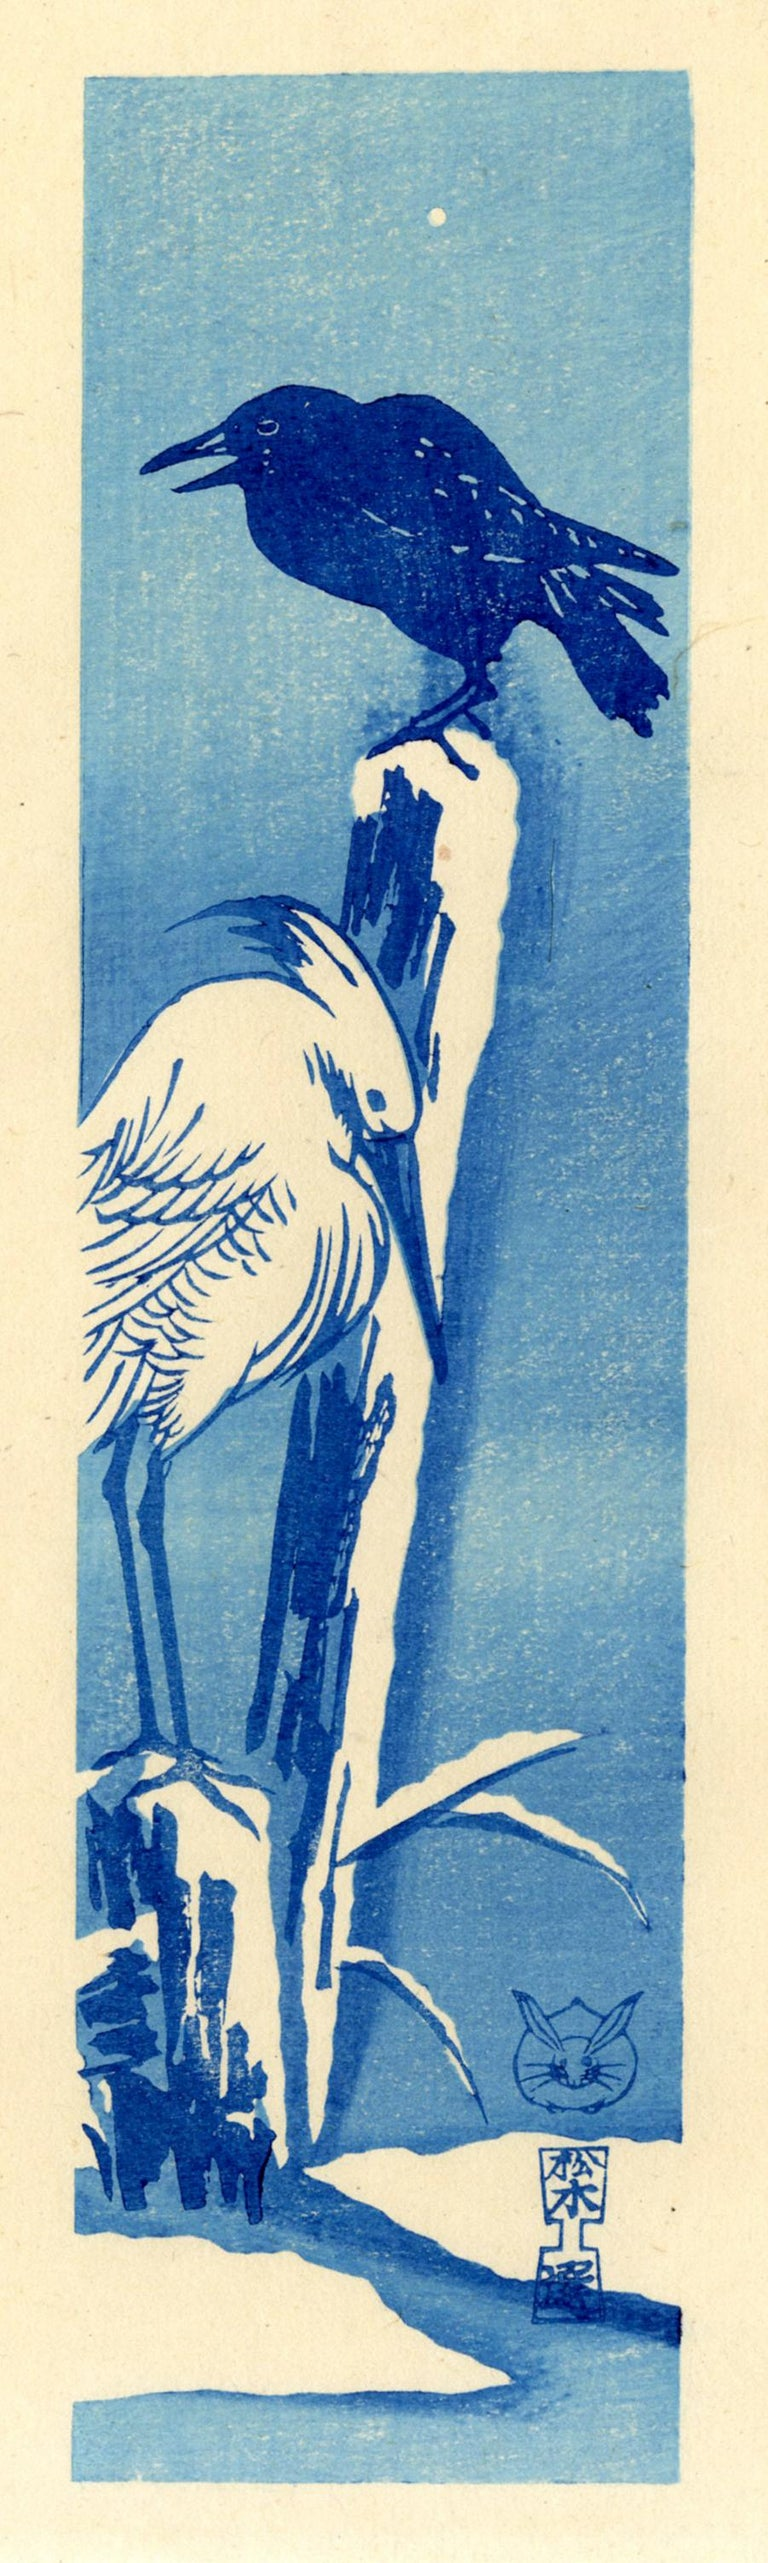 Unknown Figurative Print - Heron and Crow in Snow